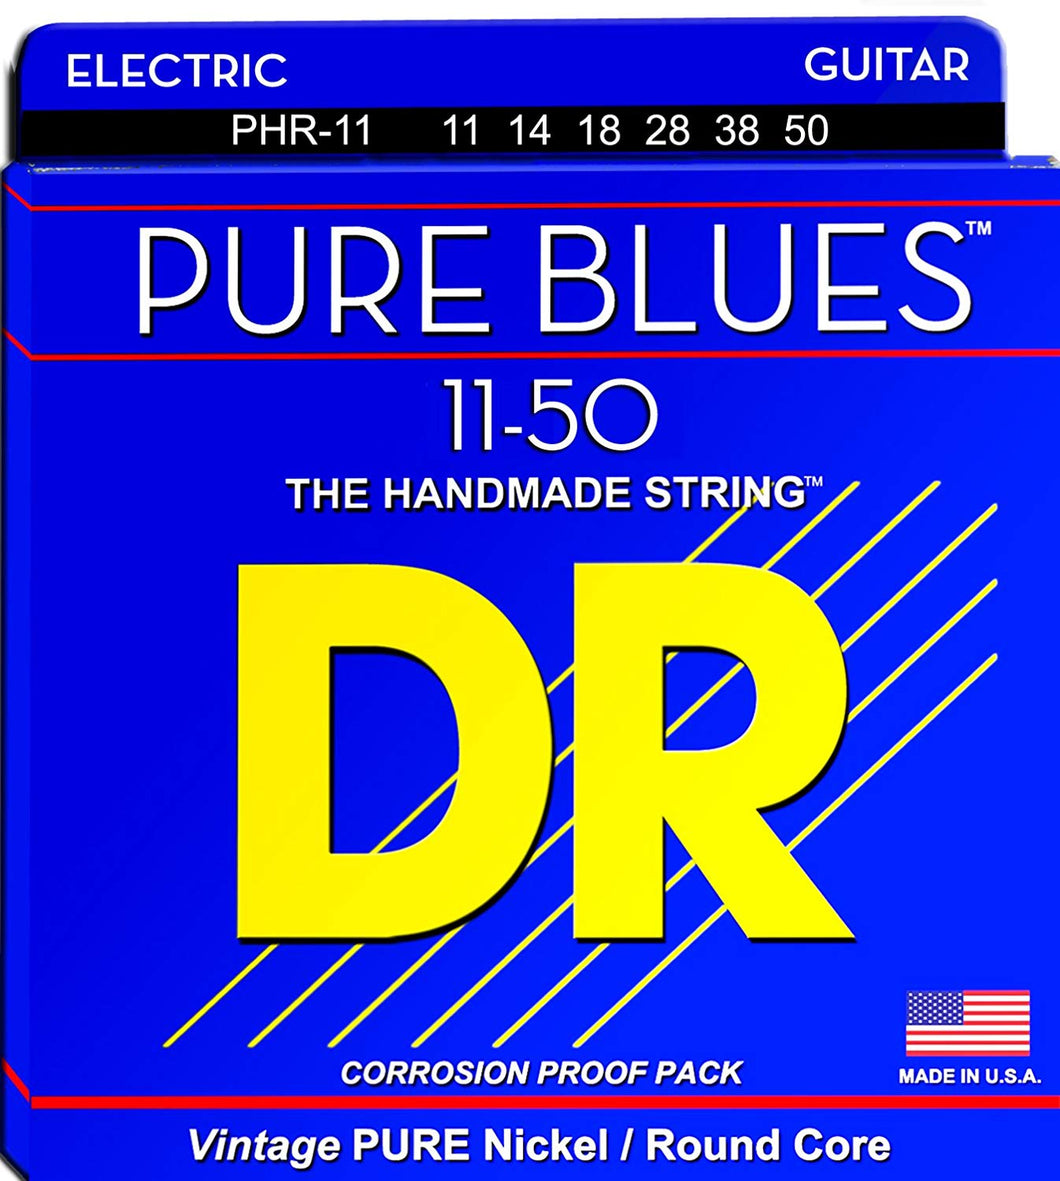 DR PHR-11 Heavy Pure Blues 11-50 Electric Guitar Strings